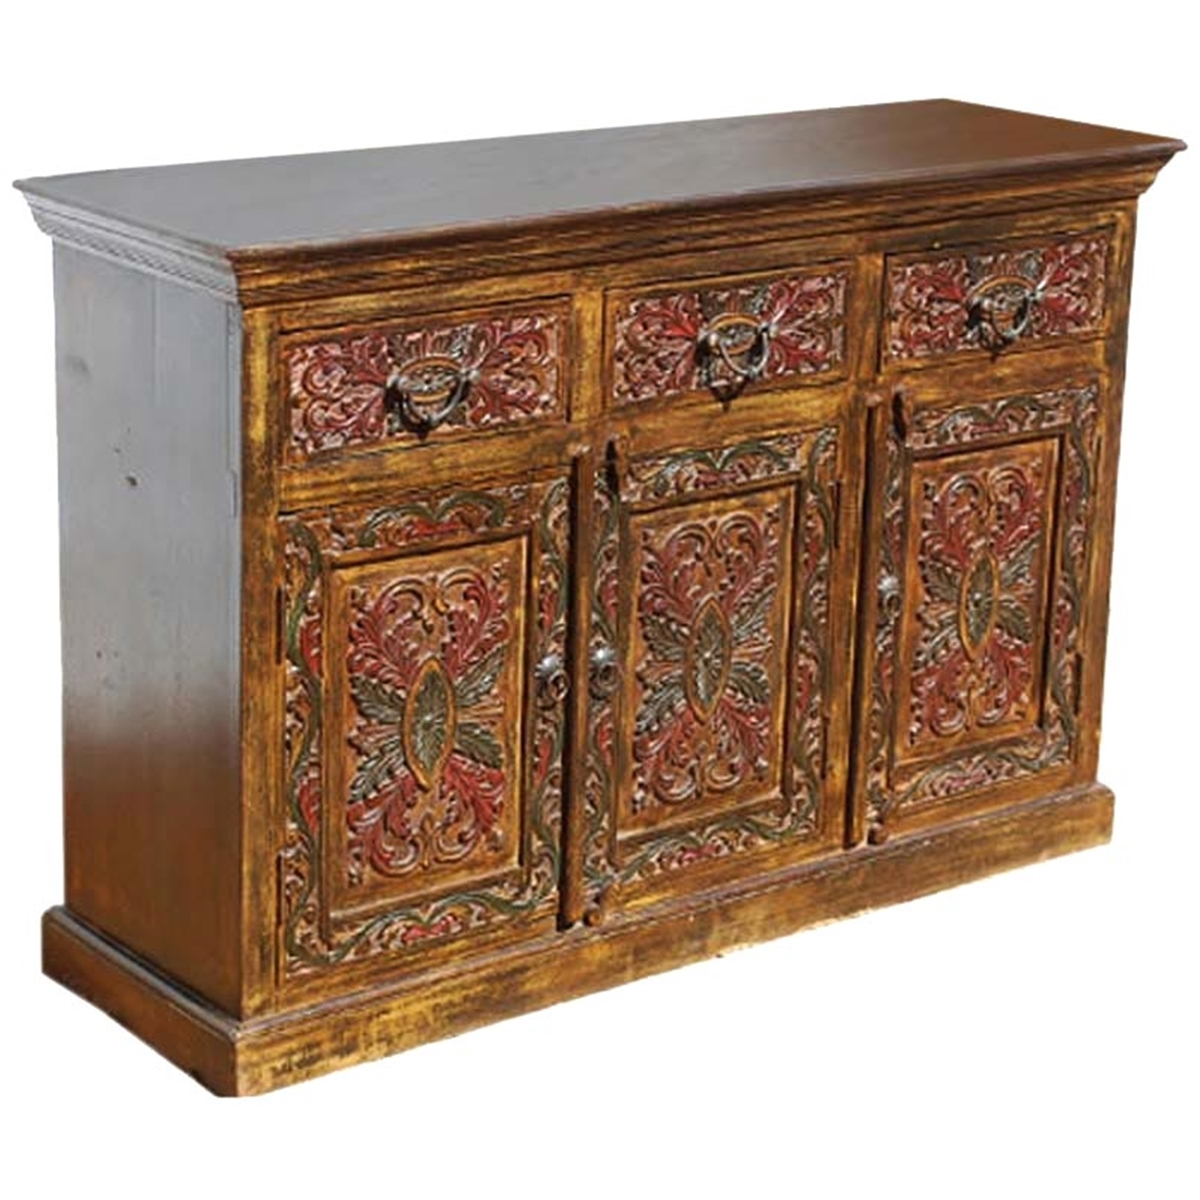 Canterbury Handcarved Solid Wood 3 Drawer Sideboard Within Recent Starburst 3 Door Sideboards (#2 of 20)